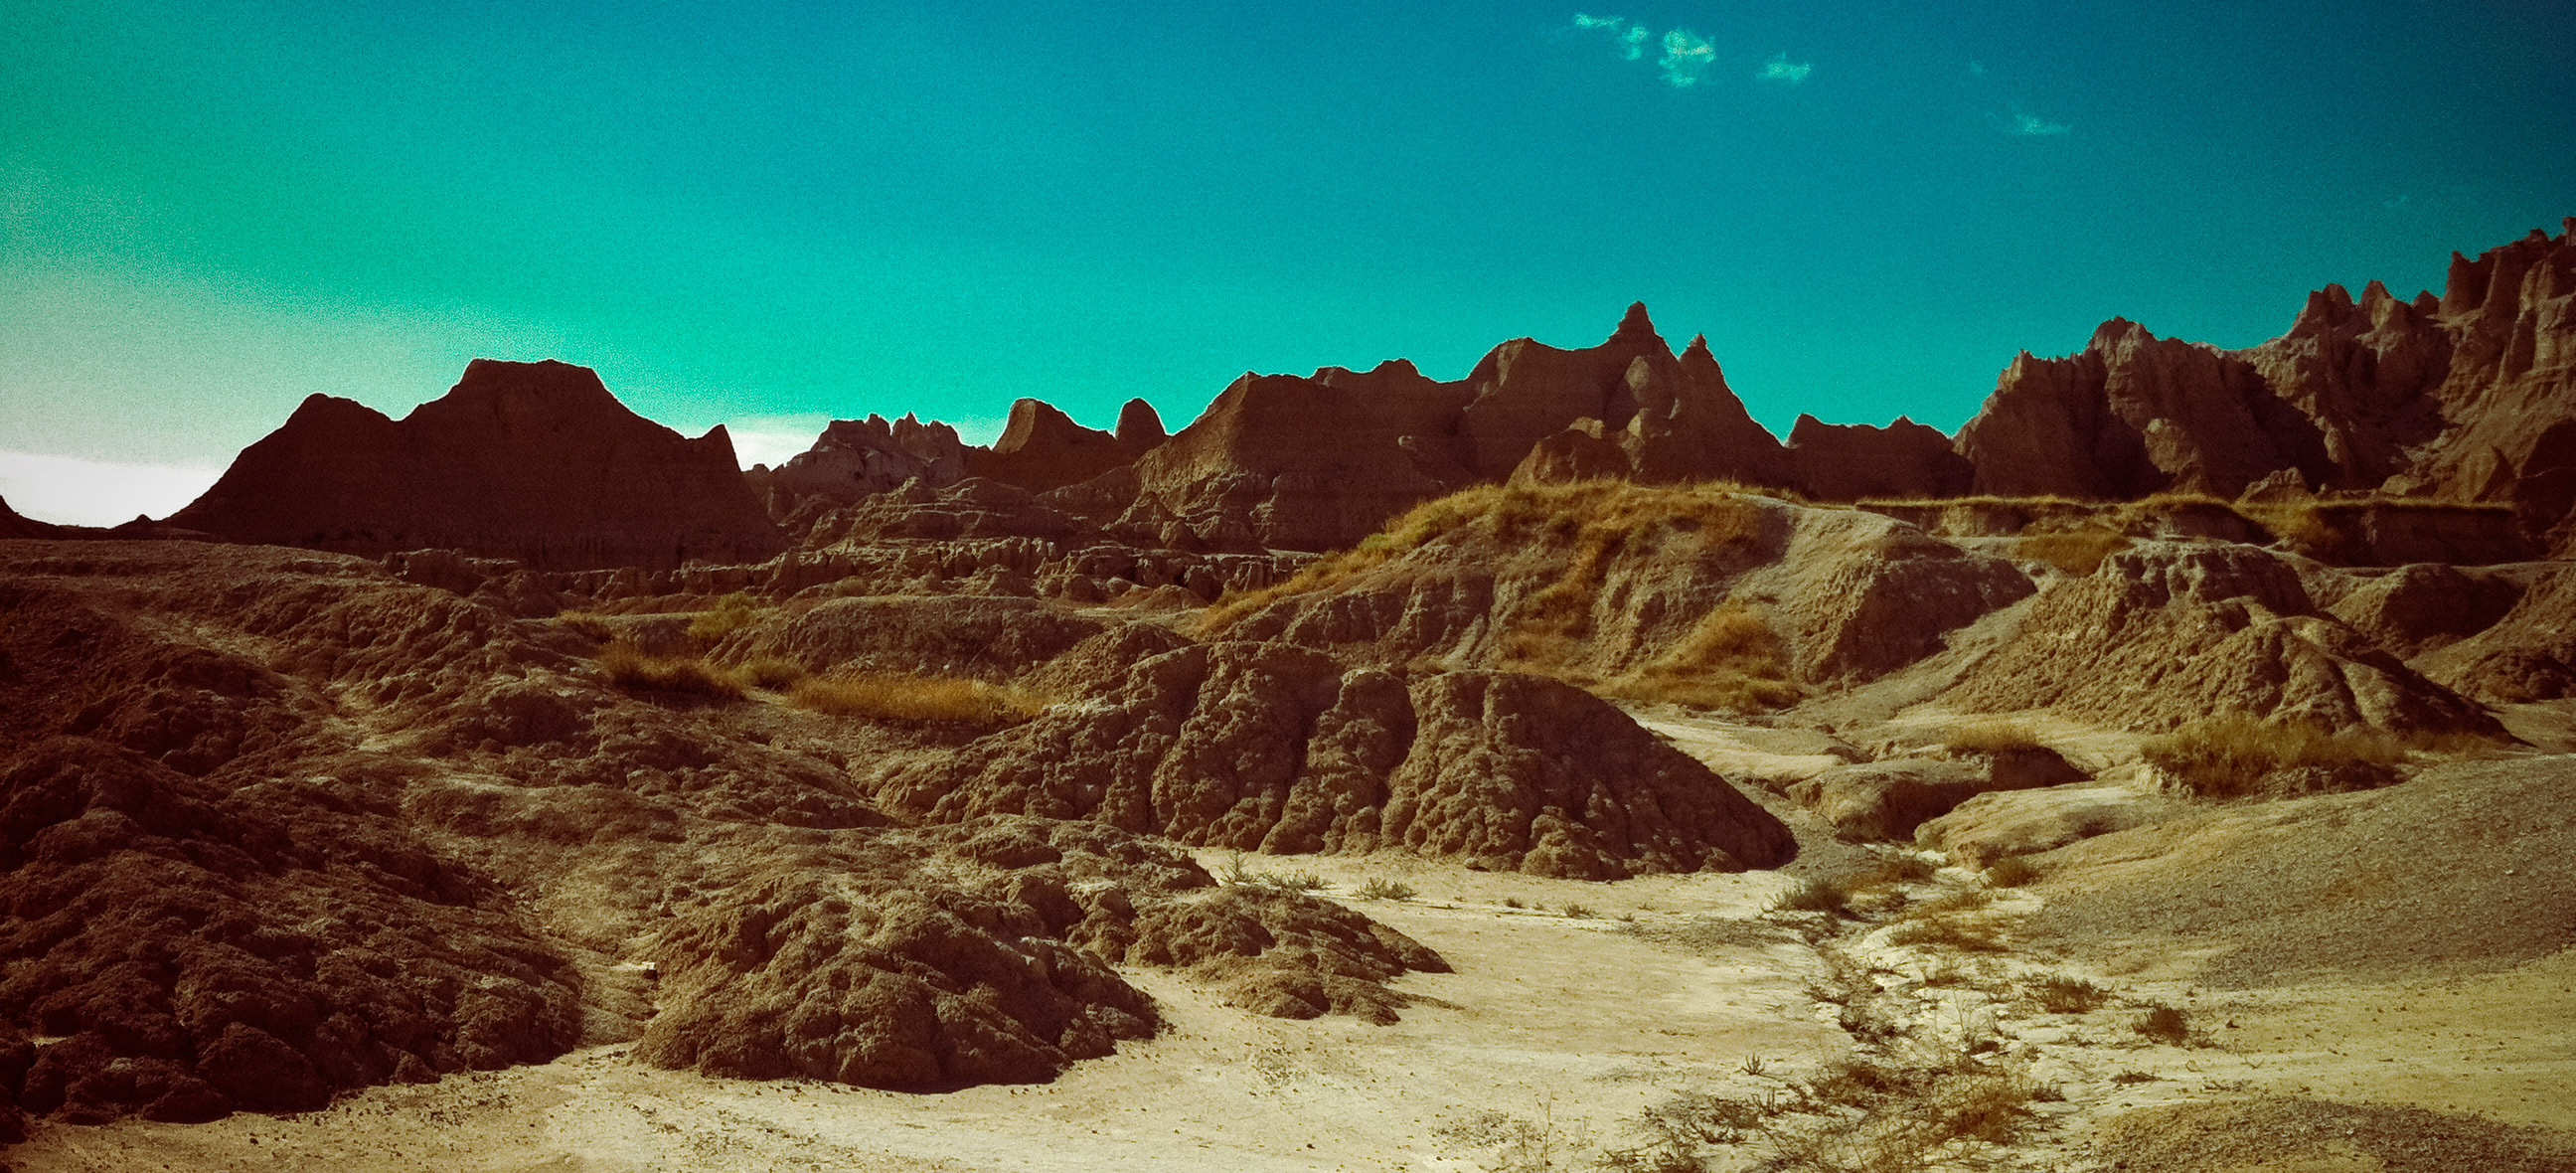 A note about Badlands National Park